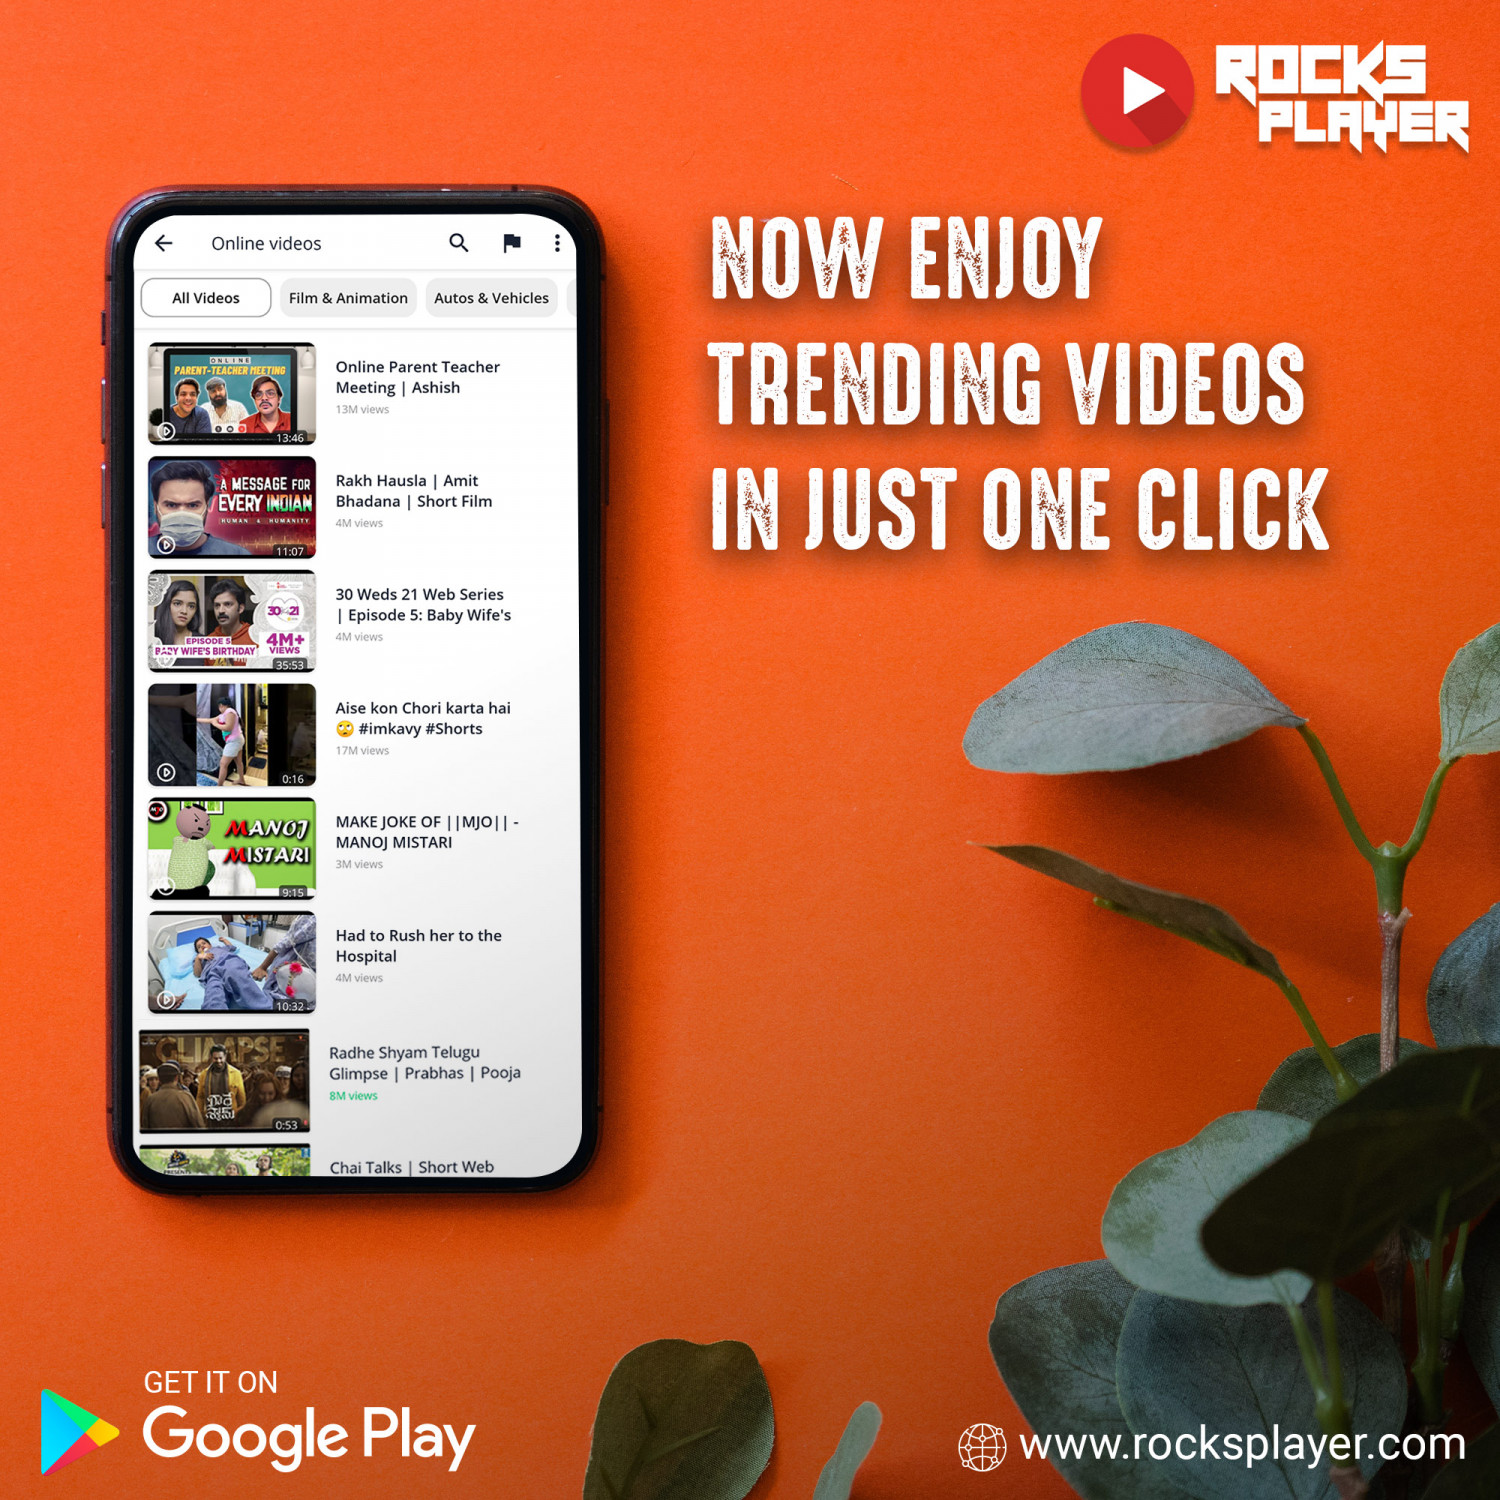 Now Enjoy Online Videos in Just One Click | Rocks Player App Infographic